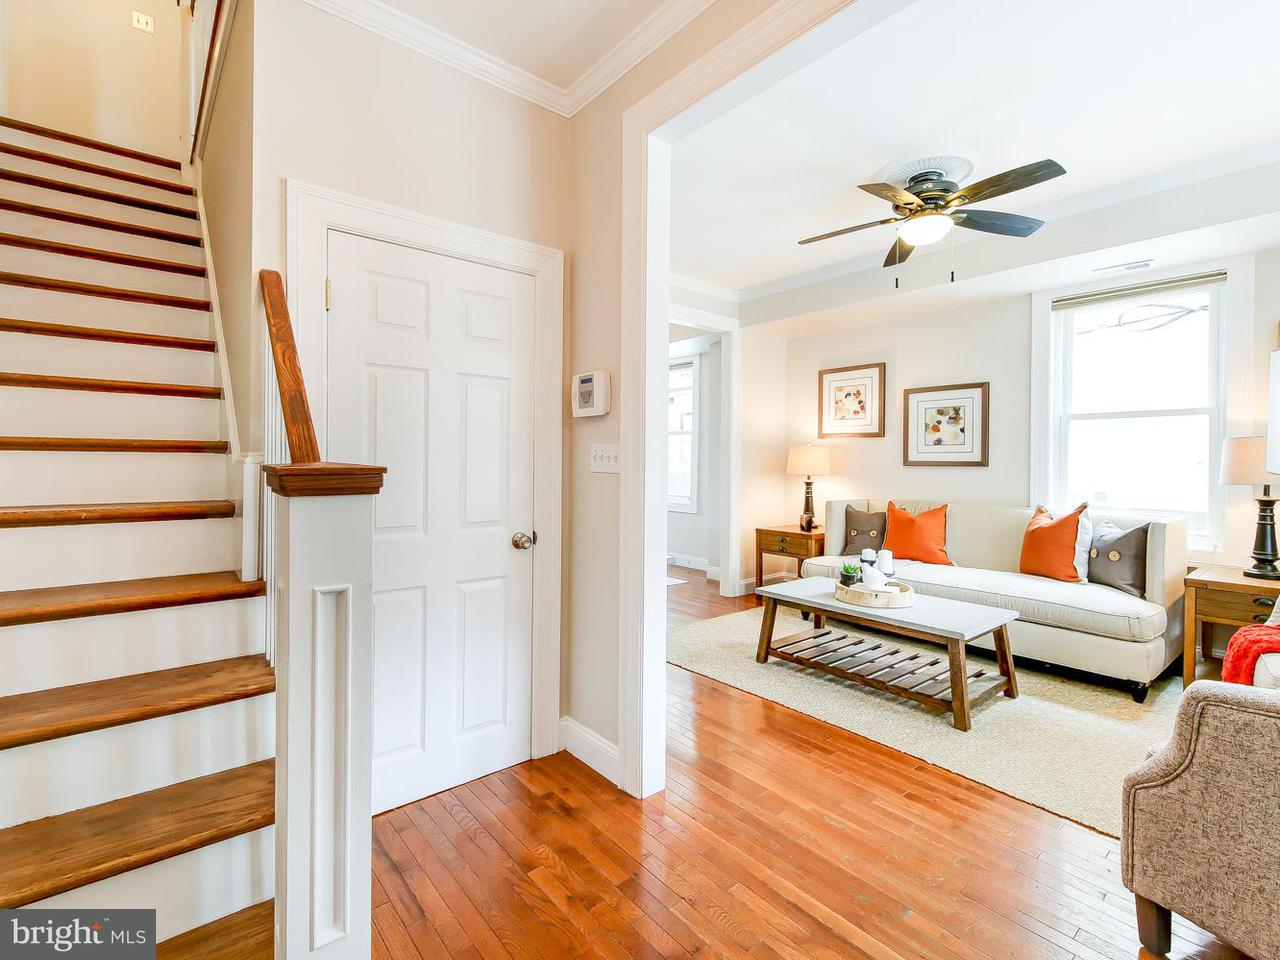 Townhouse for Sale at 1115 Orren St Ne 1115 Orren St Ne Washington, District Of Columbia 20002 United States